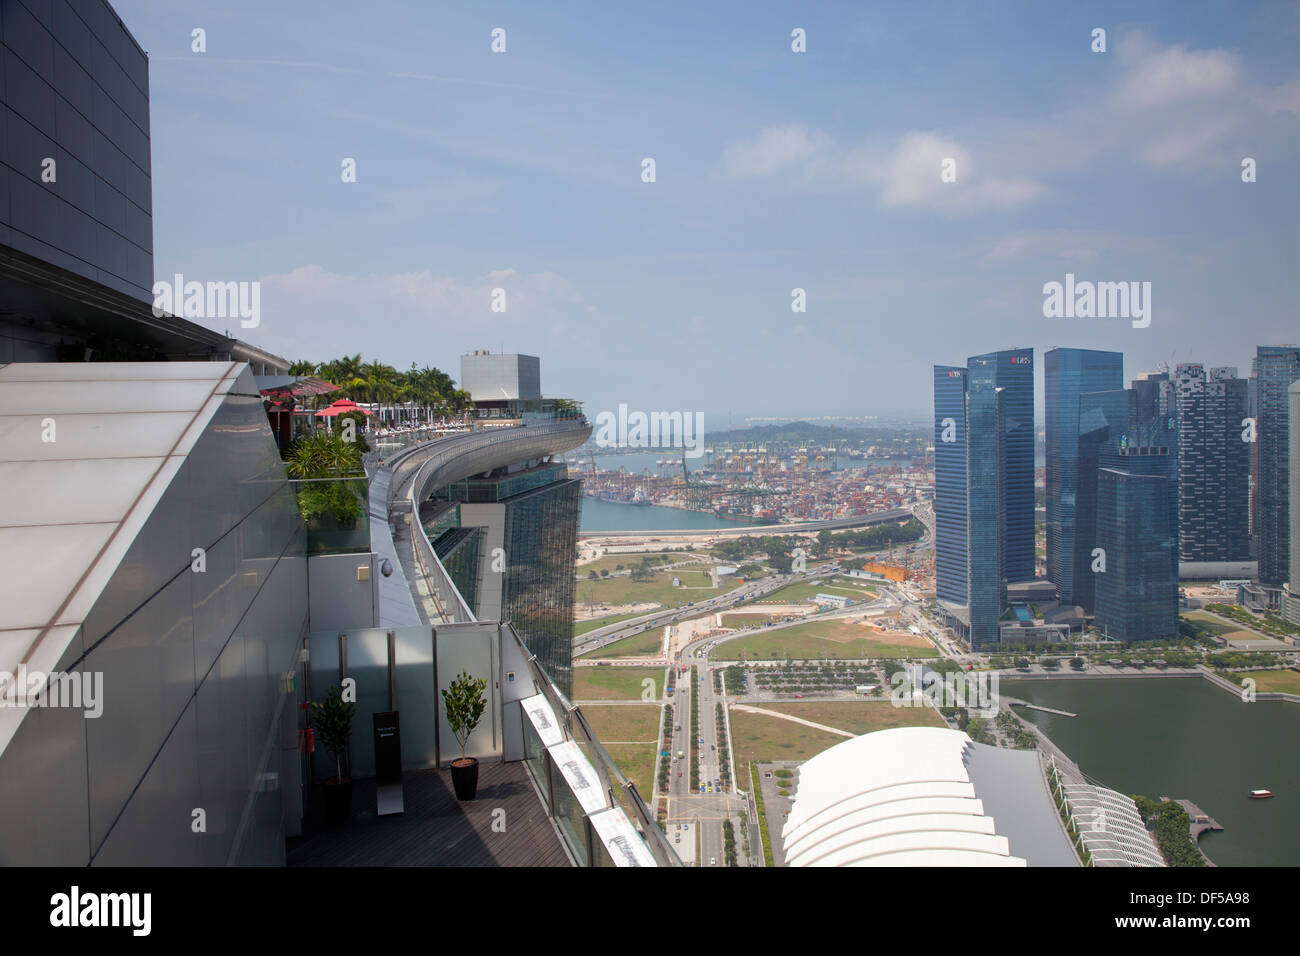 Marina Bay Sands Hotel roof pool Singapore Asia